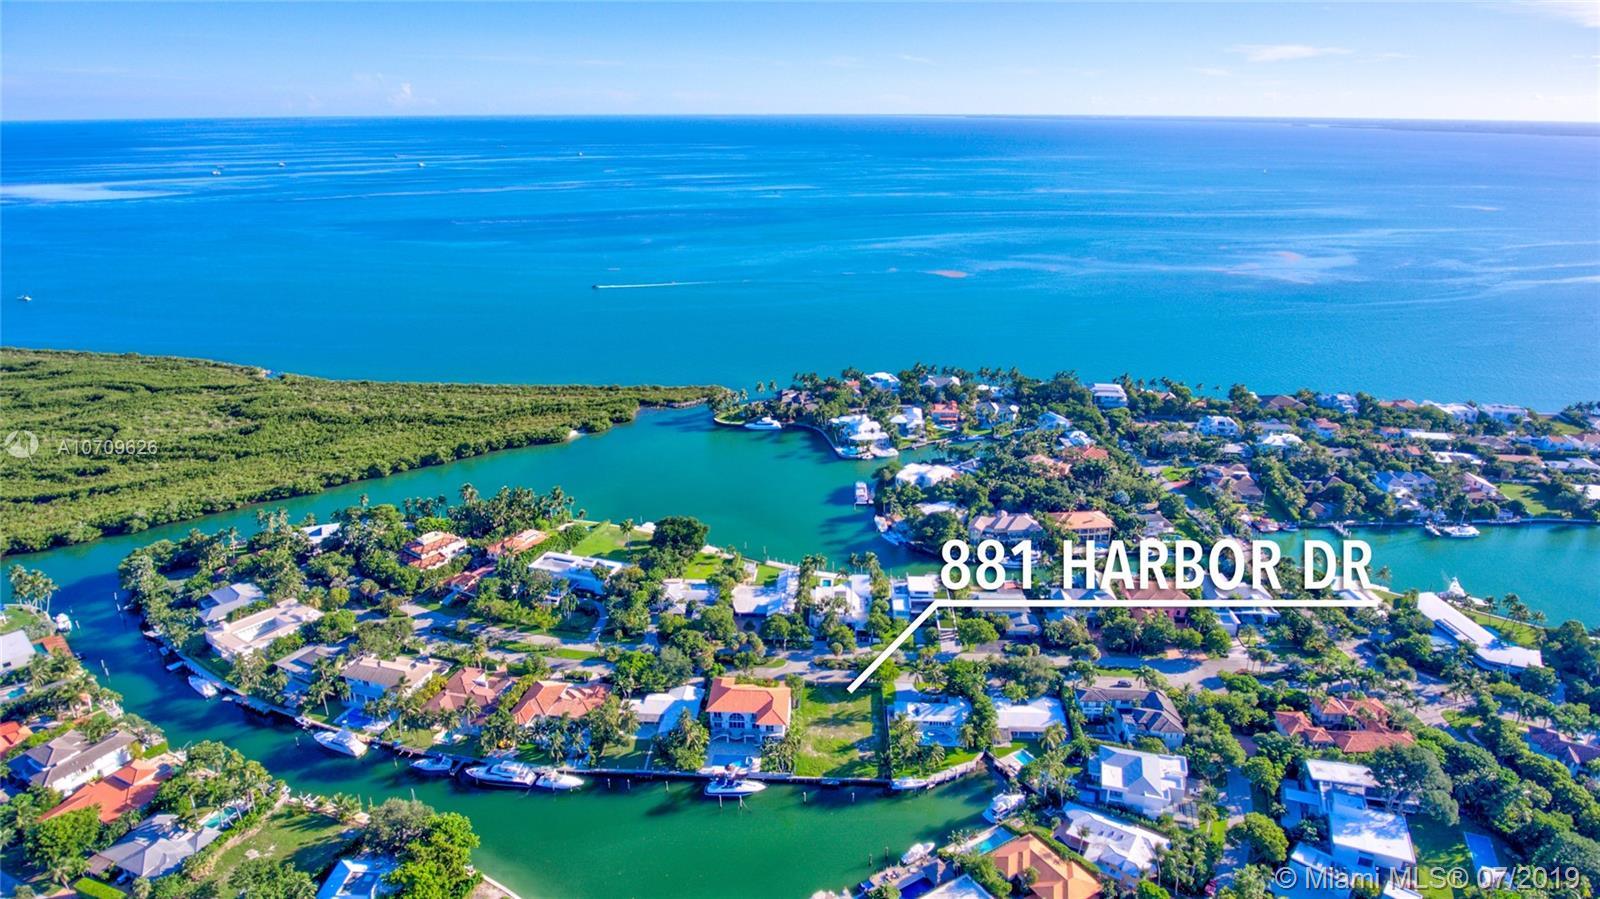 881 Harbor Dr, Key Biscayne, Florida